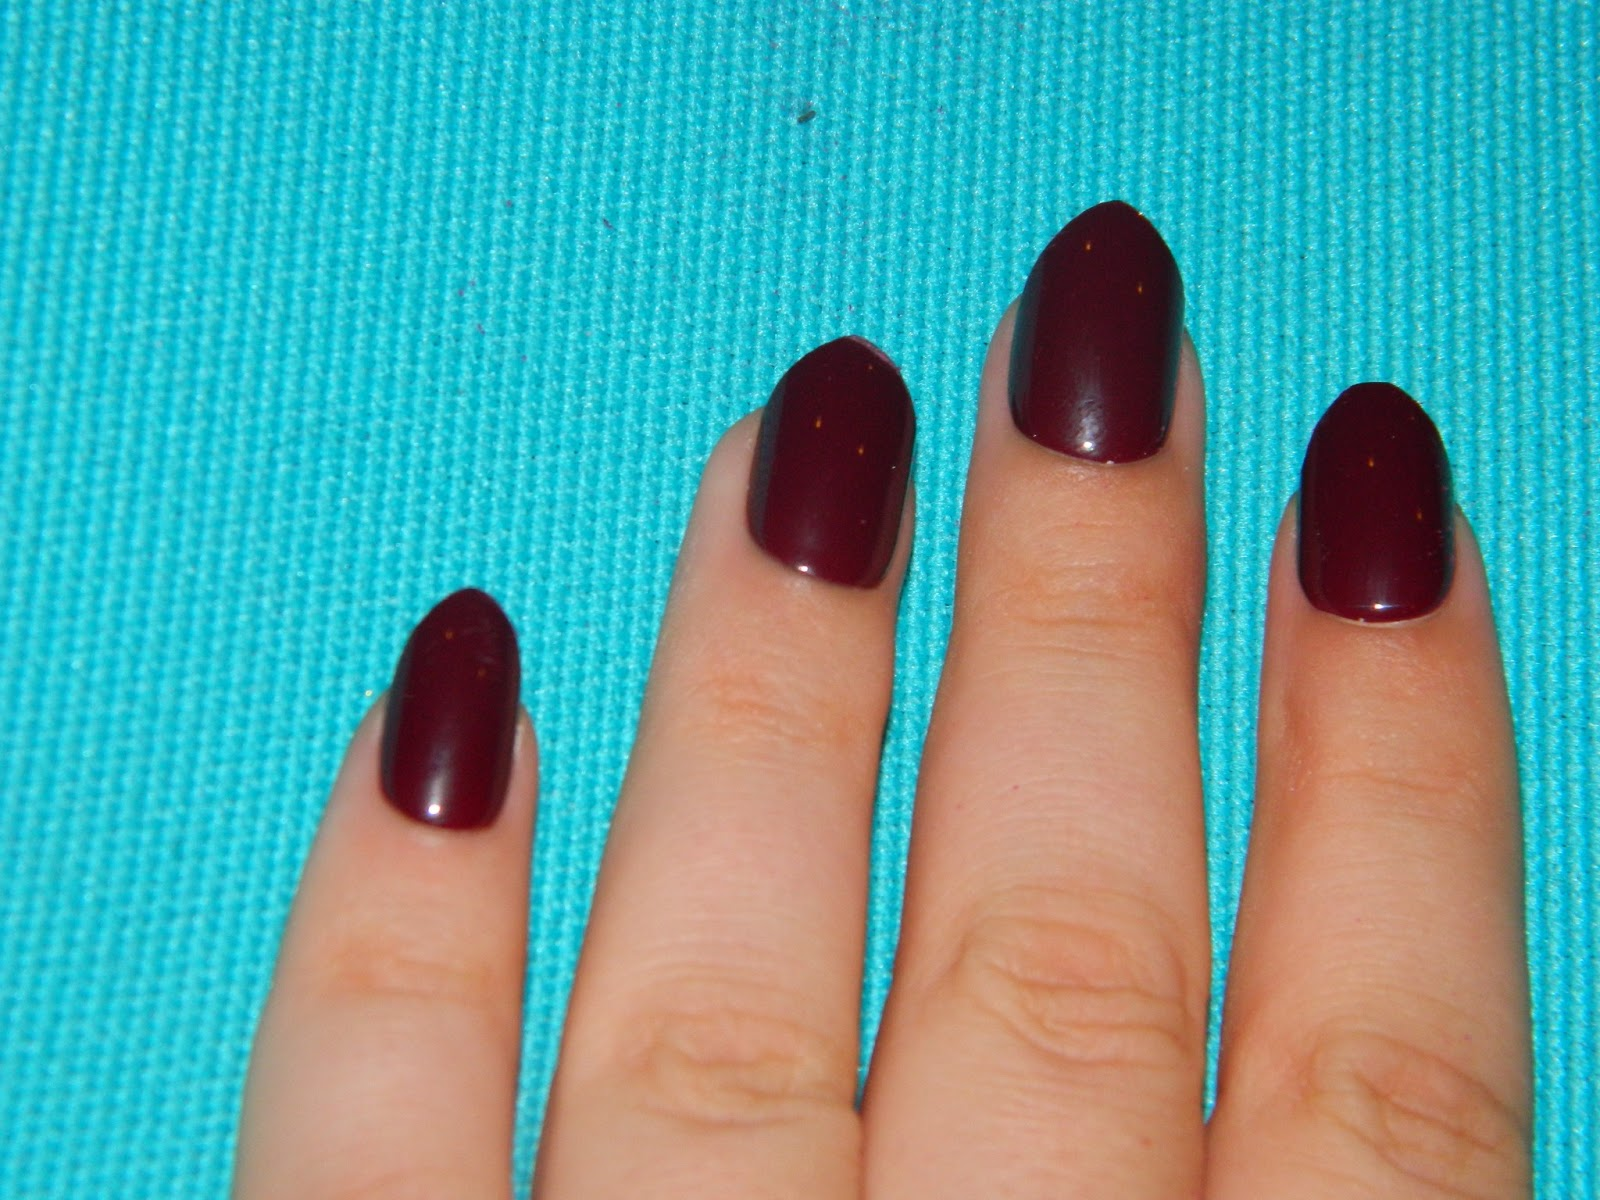 Remove all nail polish. Use the provided prep pad to clean your nails ...